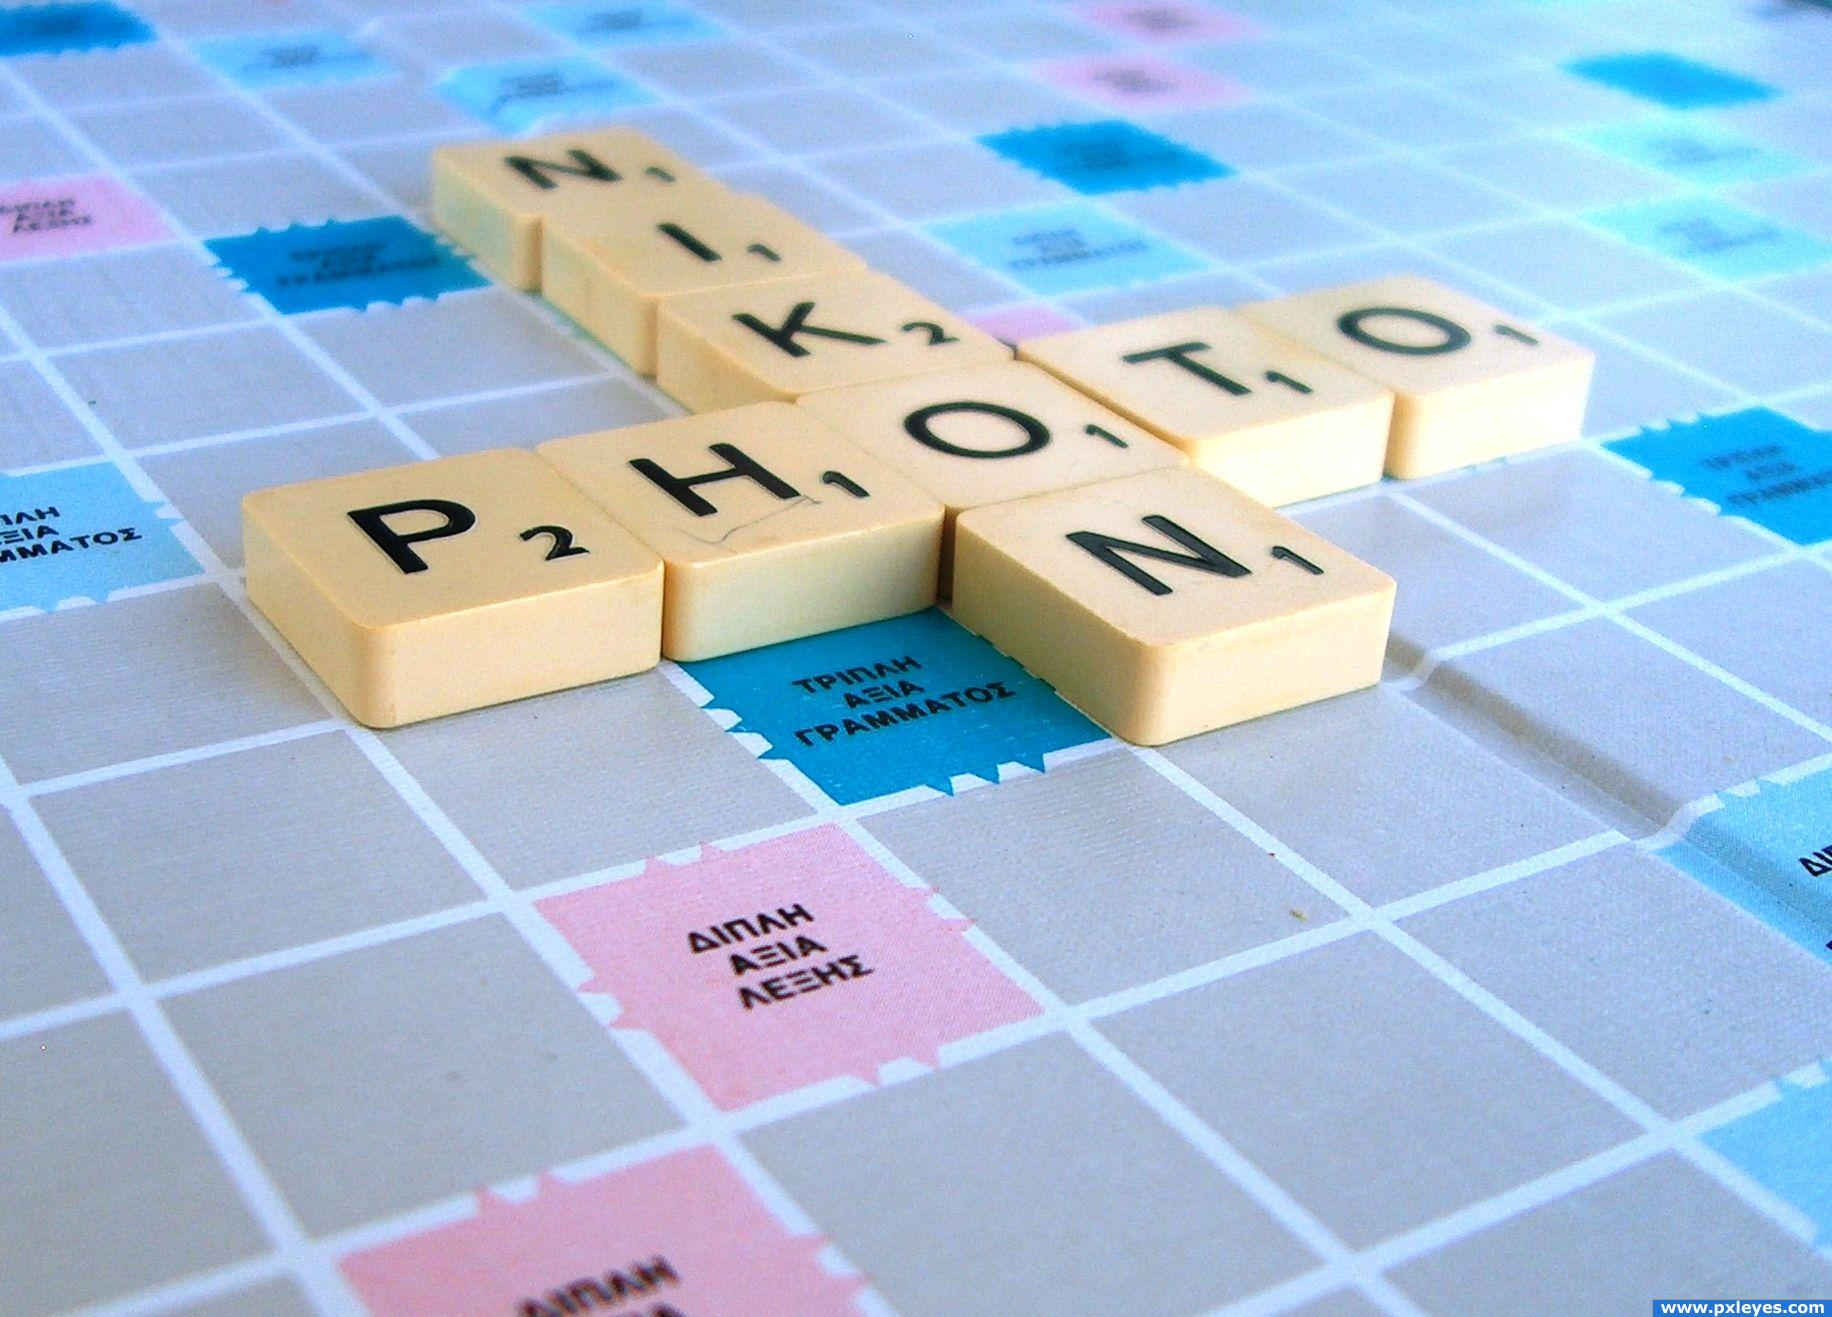 scrabble photography contest pictures image page 1 pxleyes com